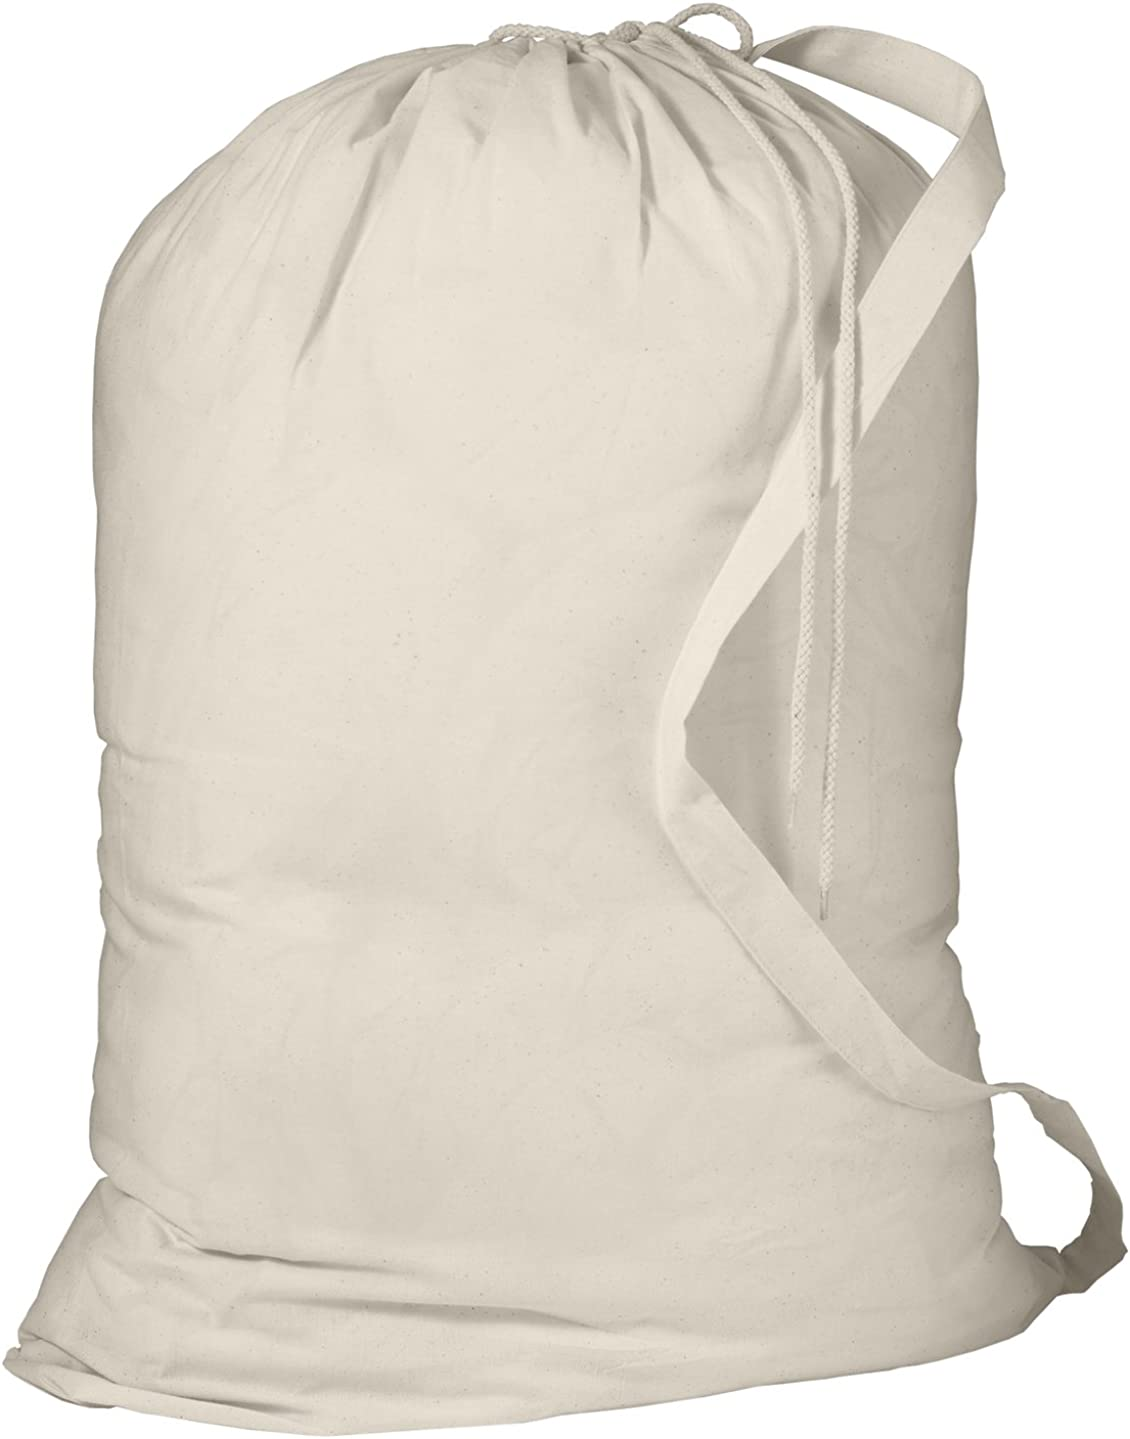 Port & Company luggage-and-bags Laundry Bag OSFA Natural